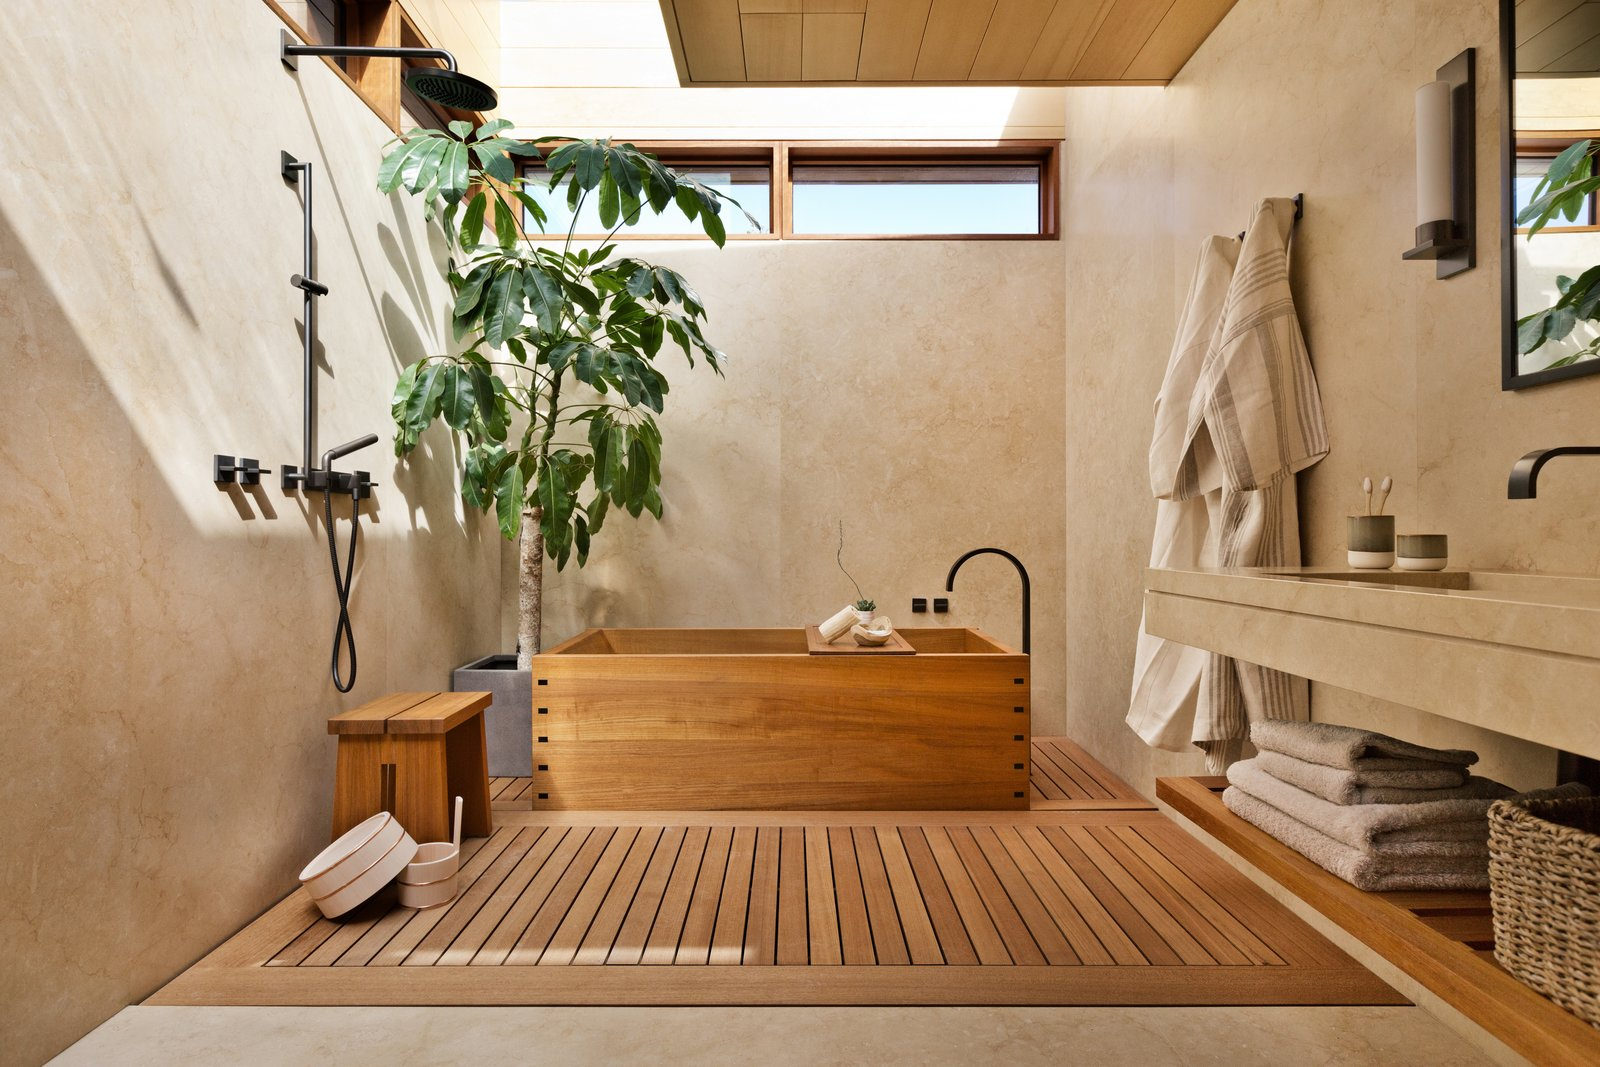 Bath Room, Open Shower, Light Hardwood Floor, Drop In Sink, Wall Lighting, Freestanding Tub, and Soaking Tub  Photo 7 of 13 in A Former Beach Motel in Malibu Is Reborn as the Japanese-Inspired Nobu Ryokan from 8 Spa-Like Bathrooms Designed to Instantly Soothe